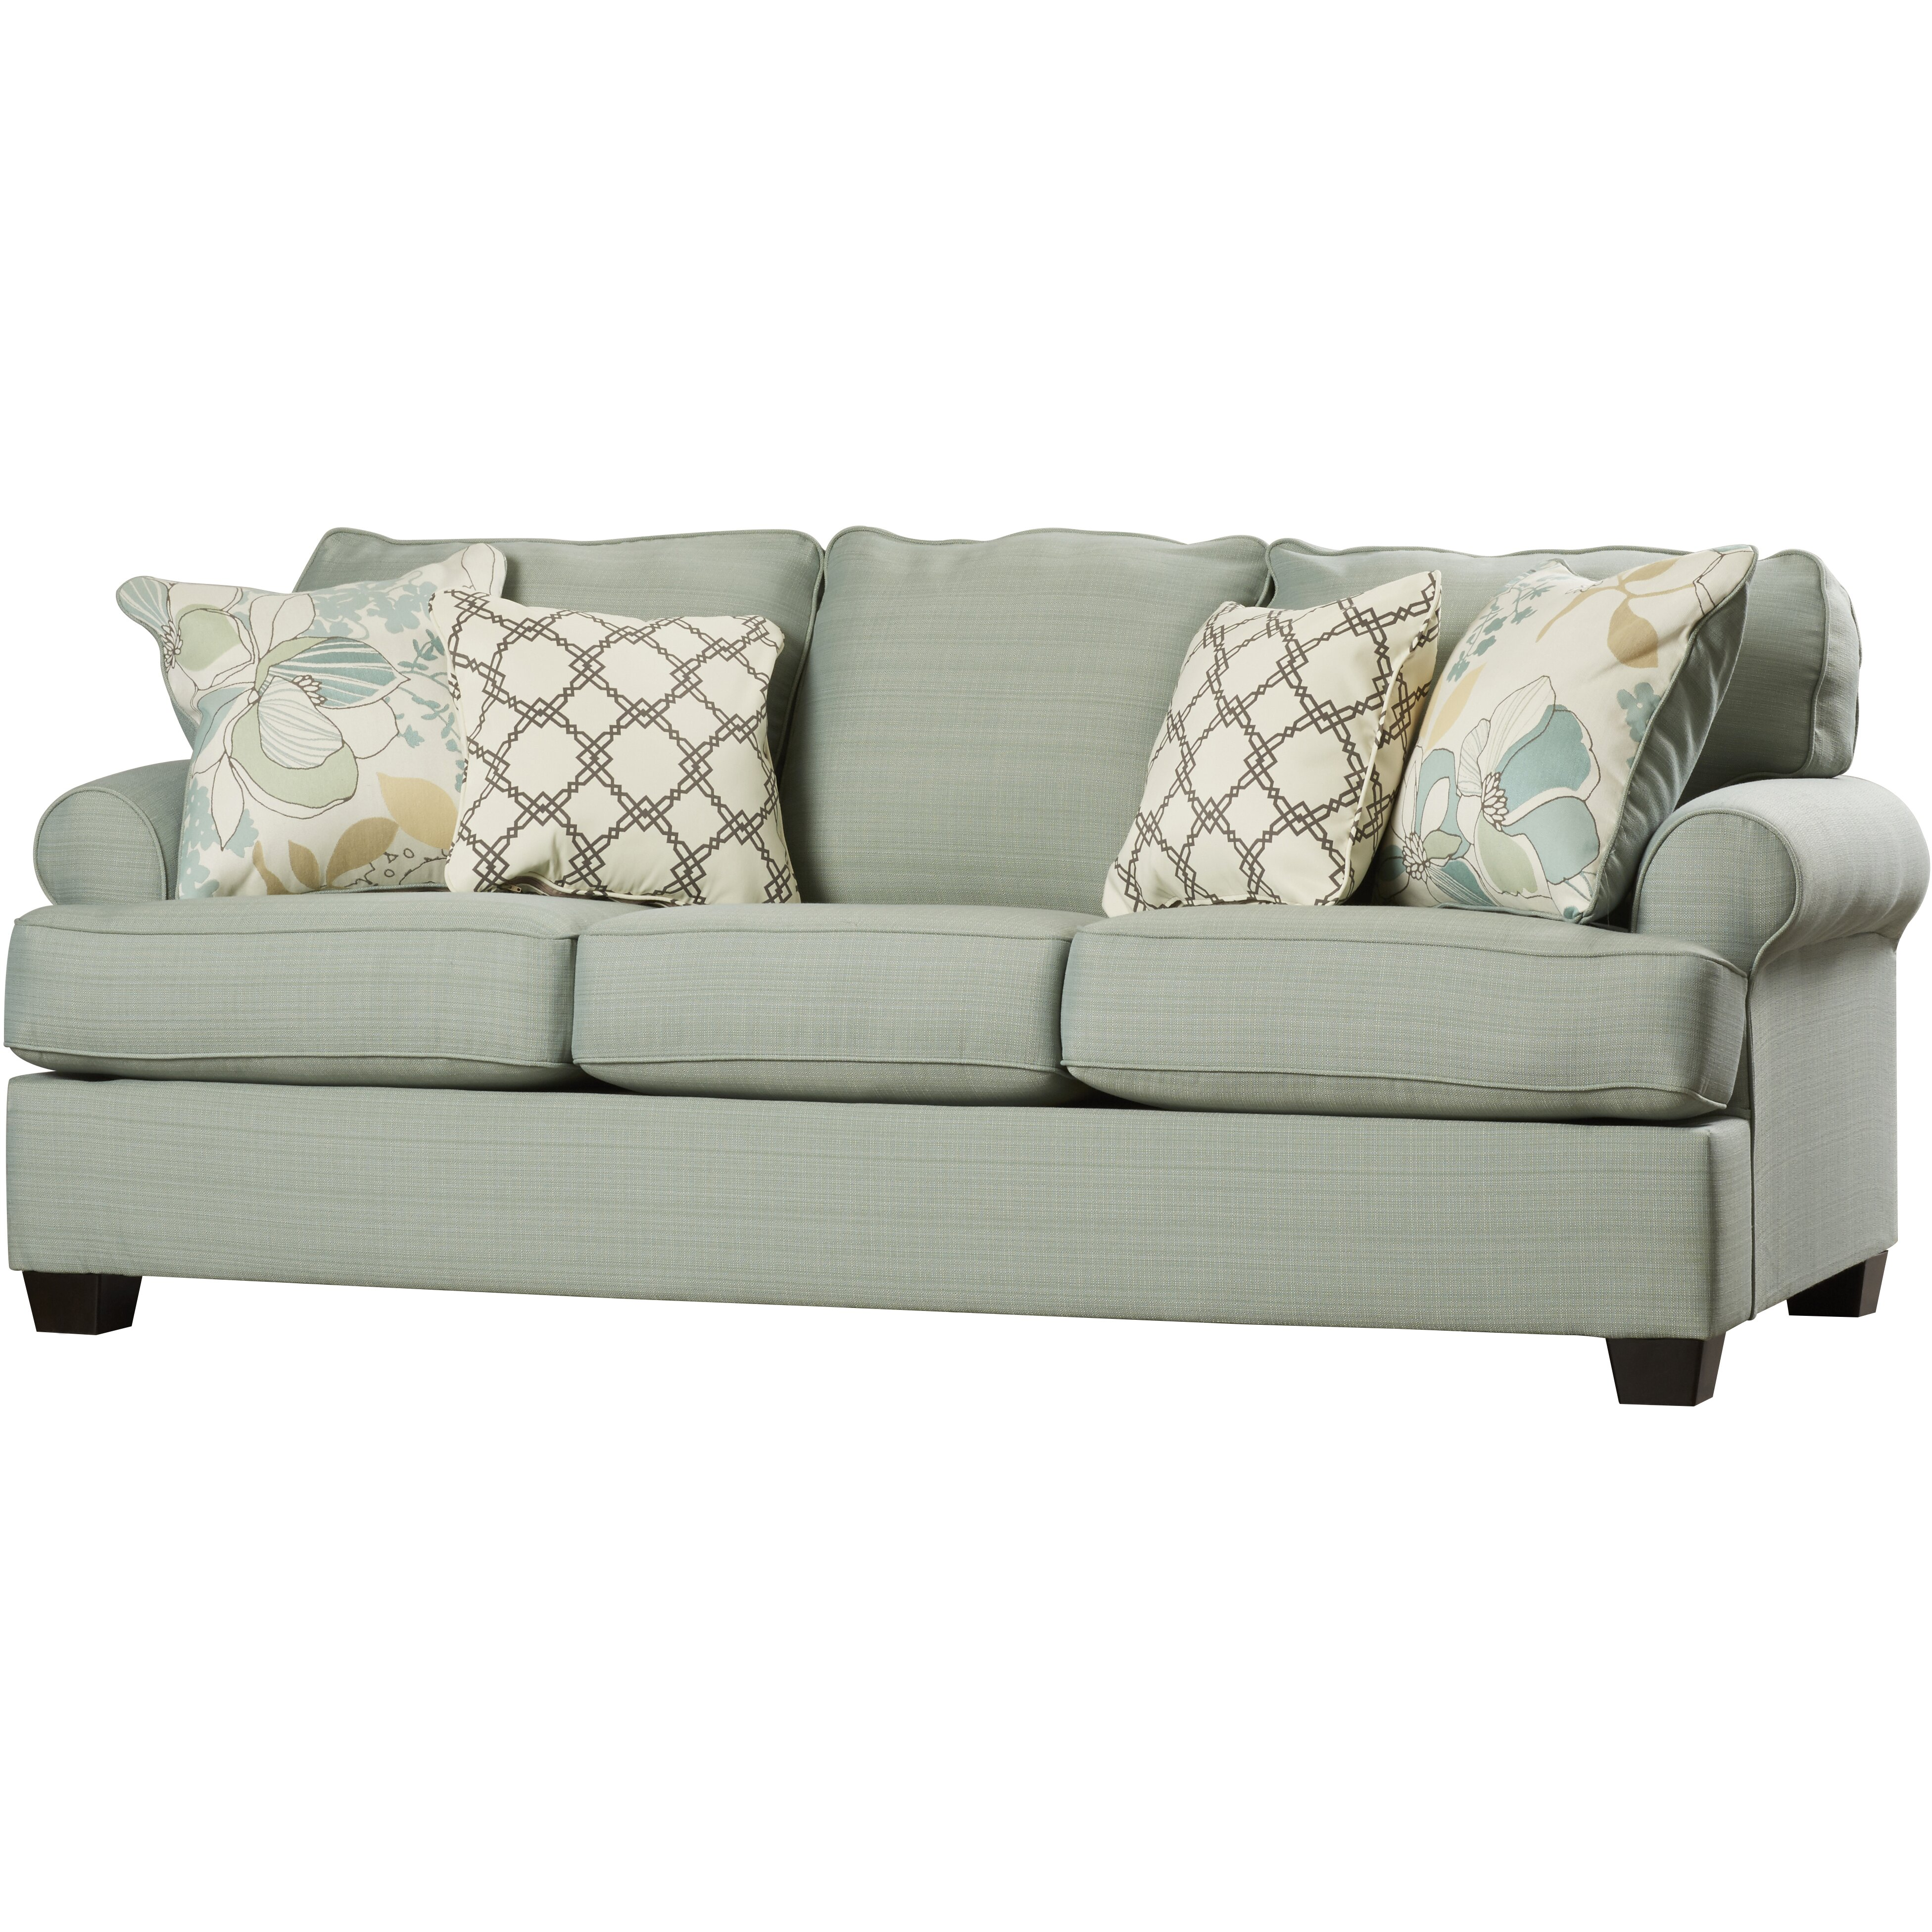 Beachcrest Home Inshore Sofa & Reviews